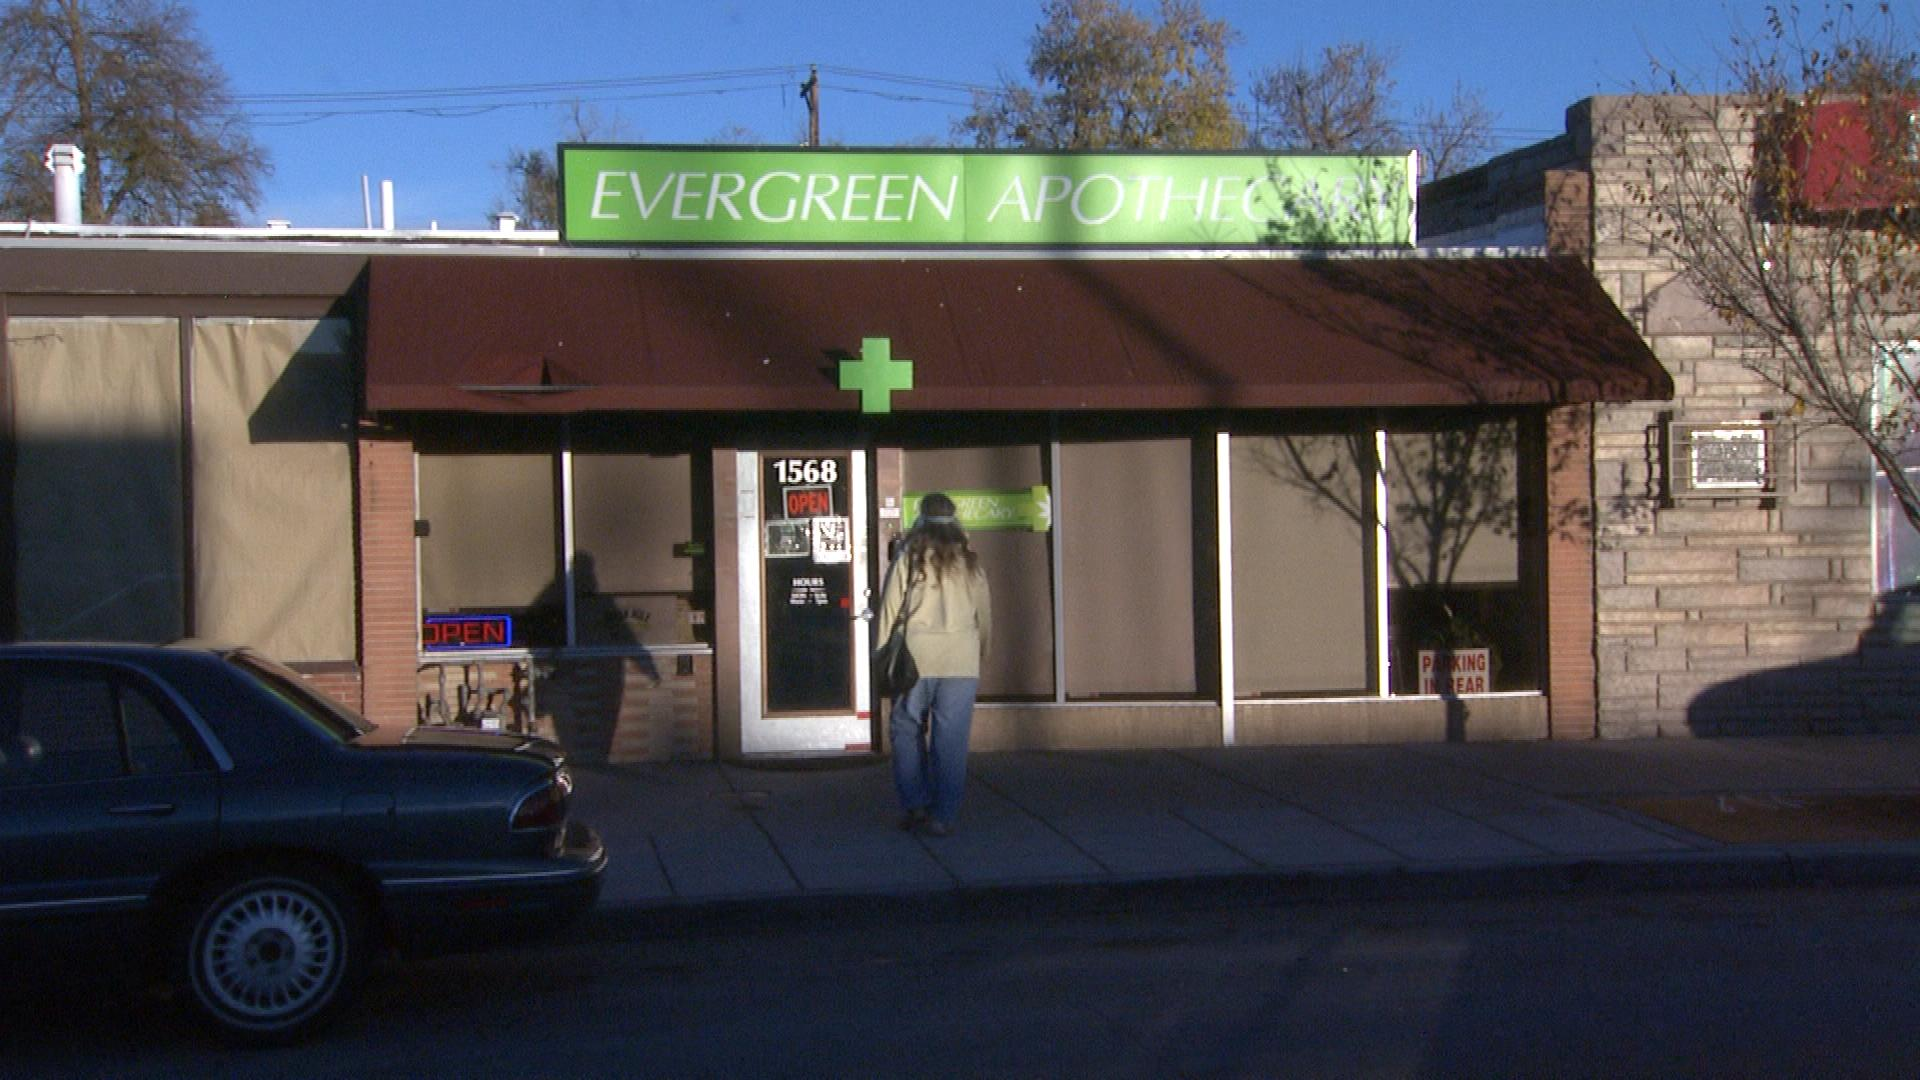 Evergreen Apothecary (credit: CBS)